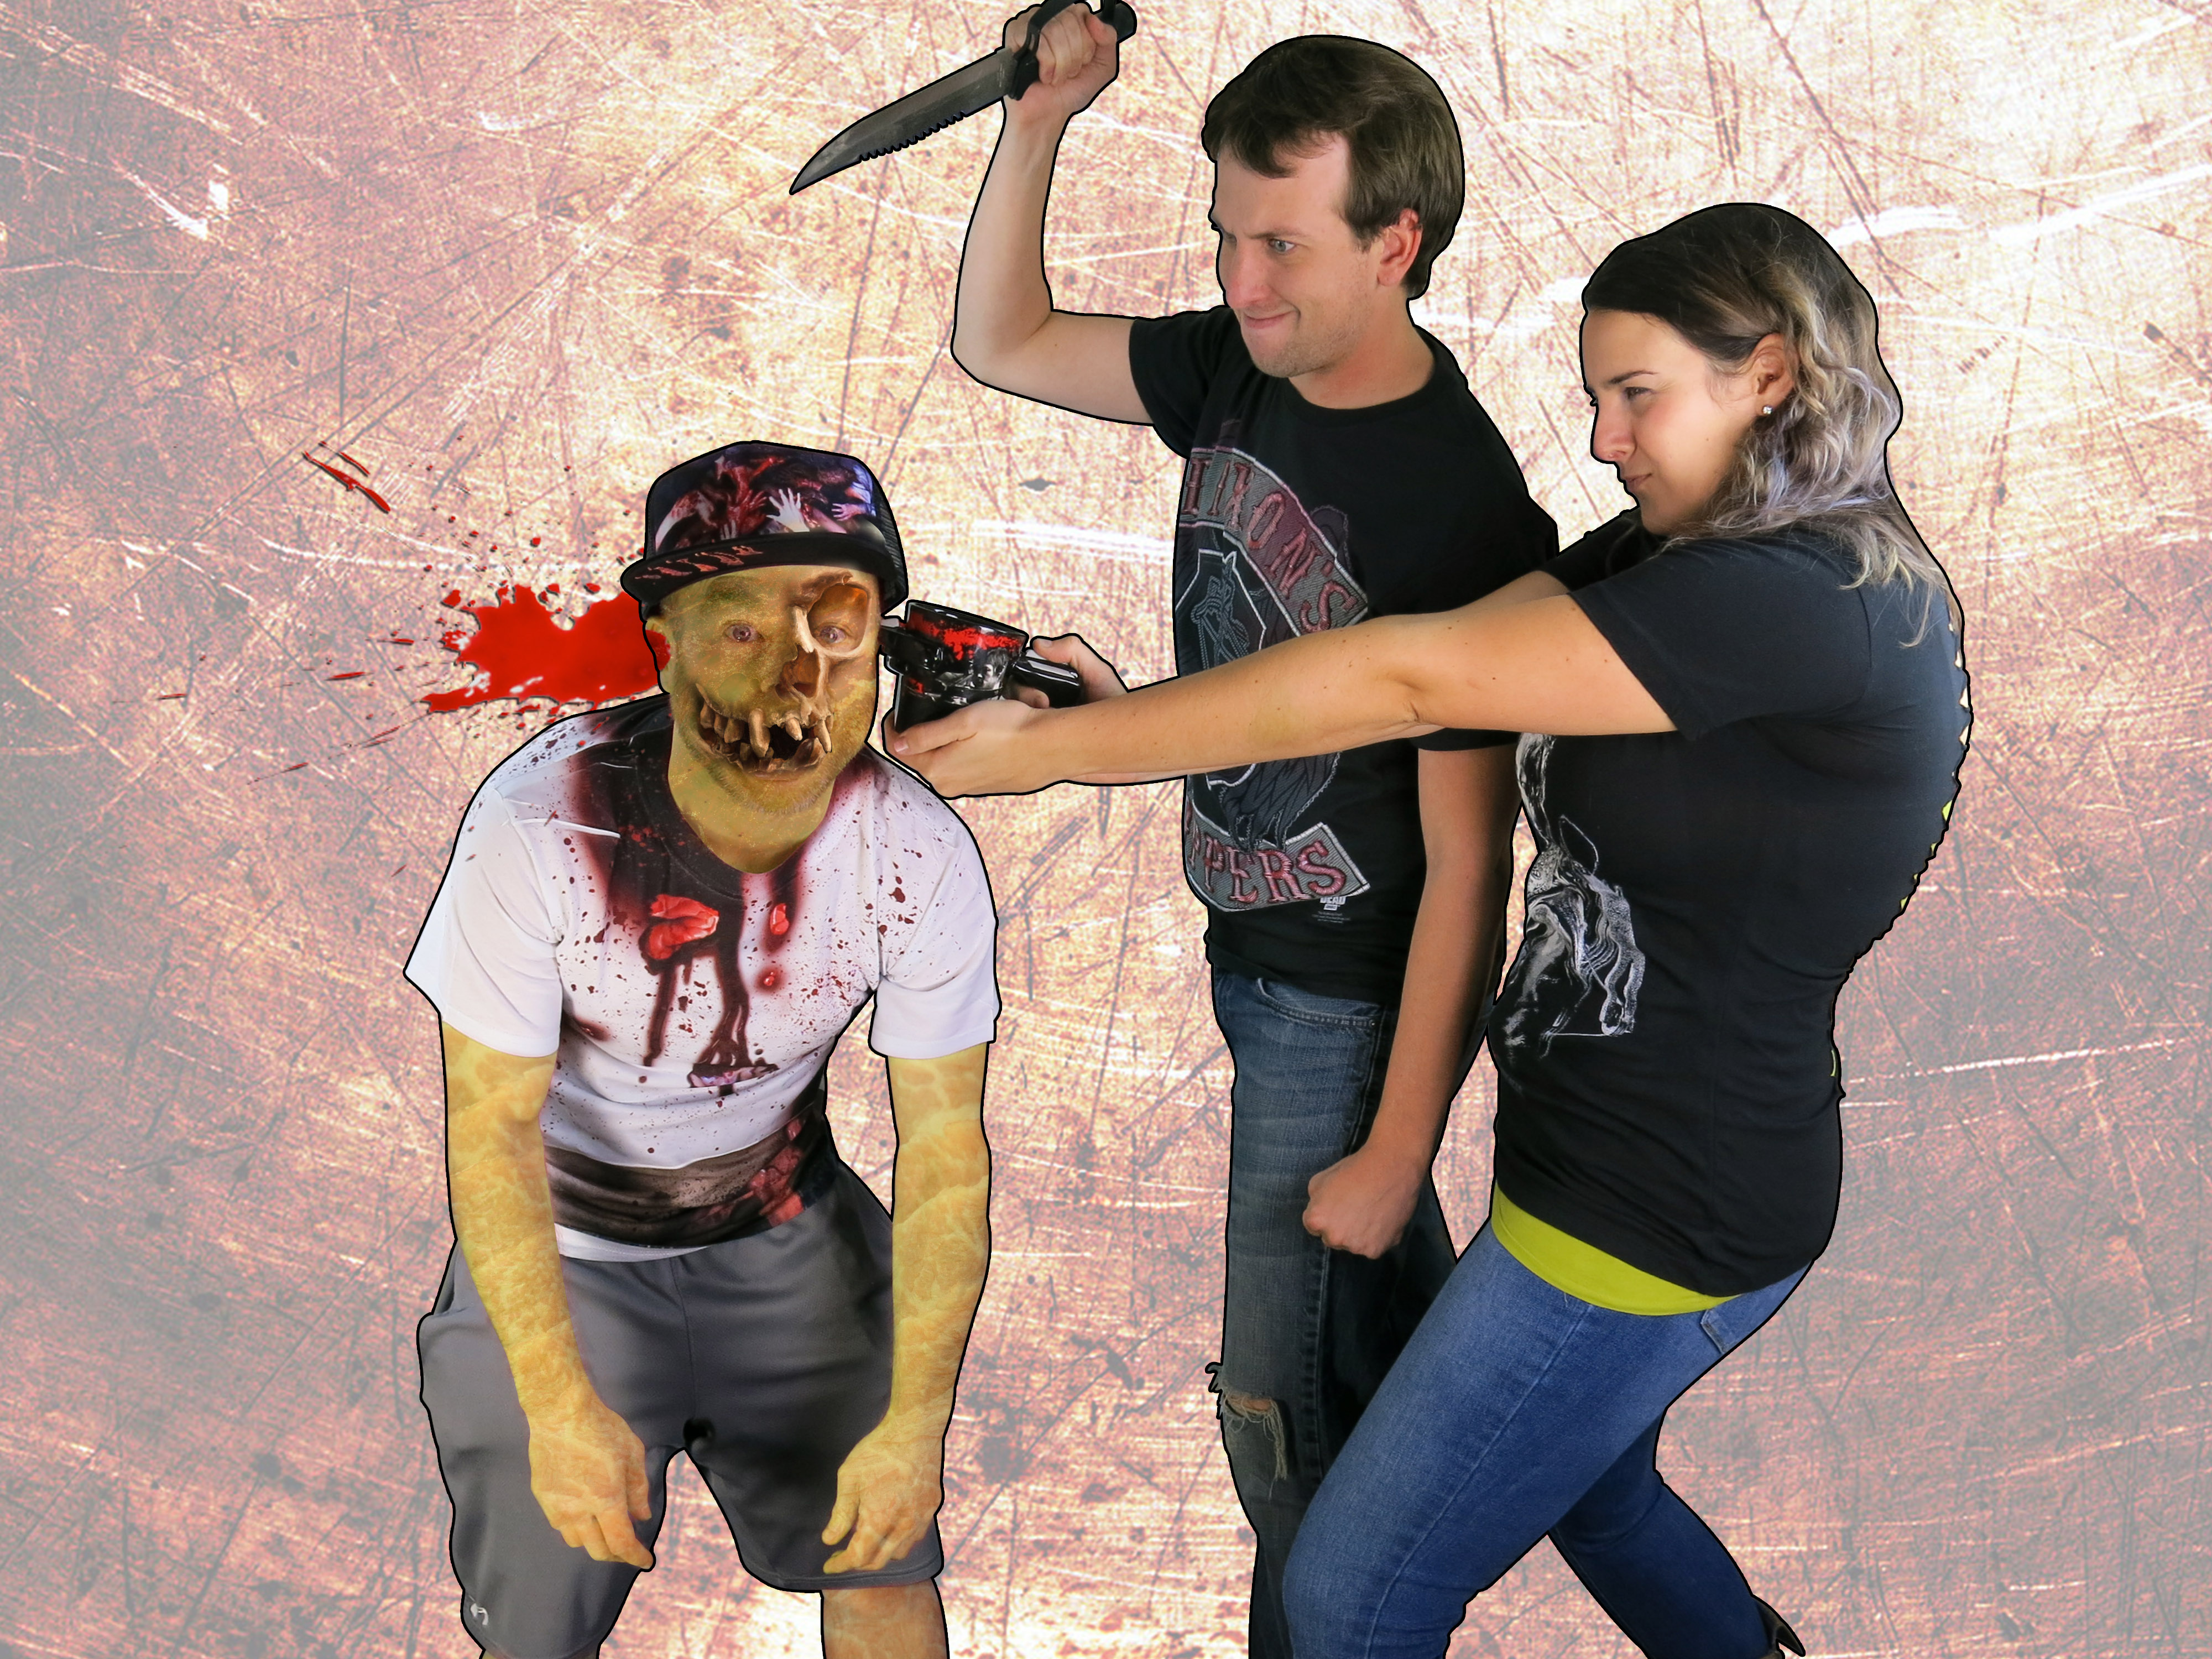 Let's kill the hell out of this zombie utilizing our favorite Walking Dead merchandise!!